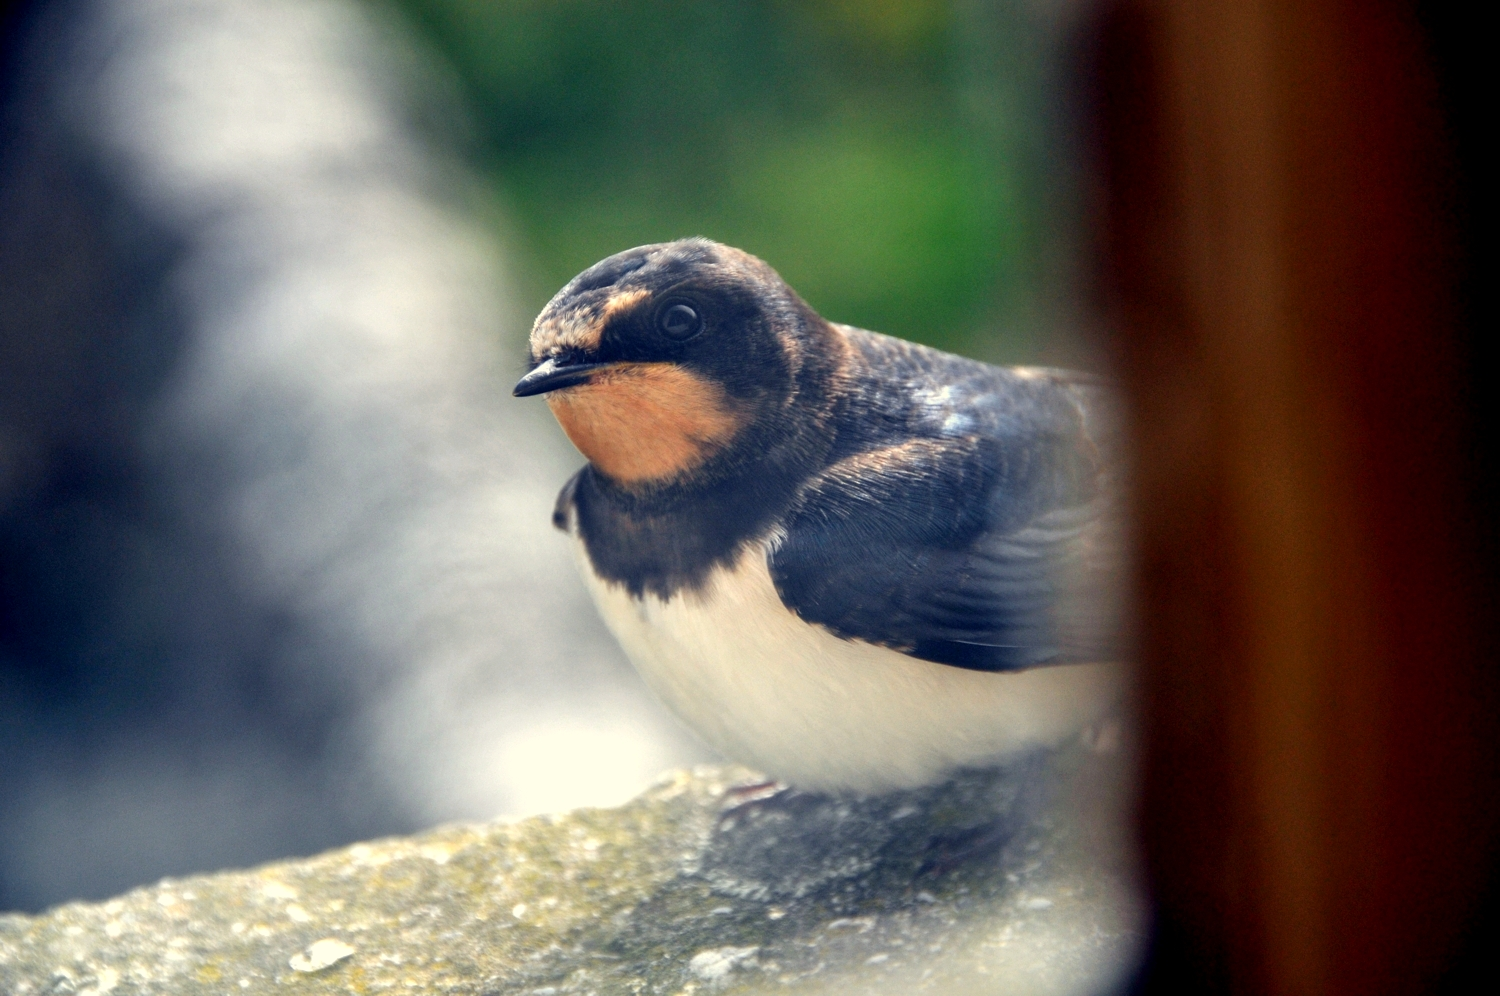 Young Swallow